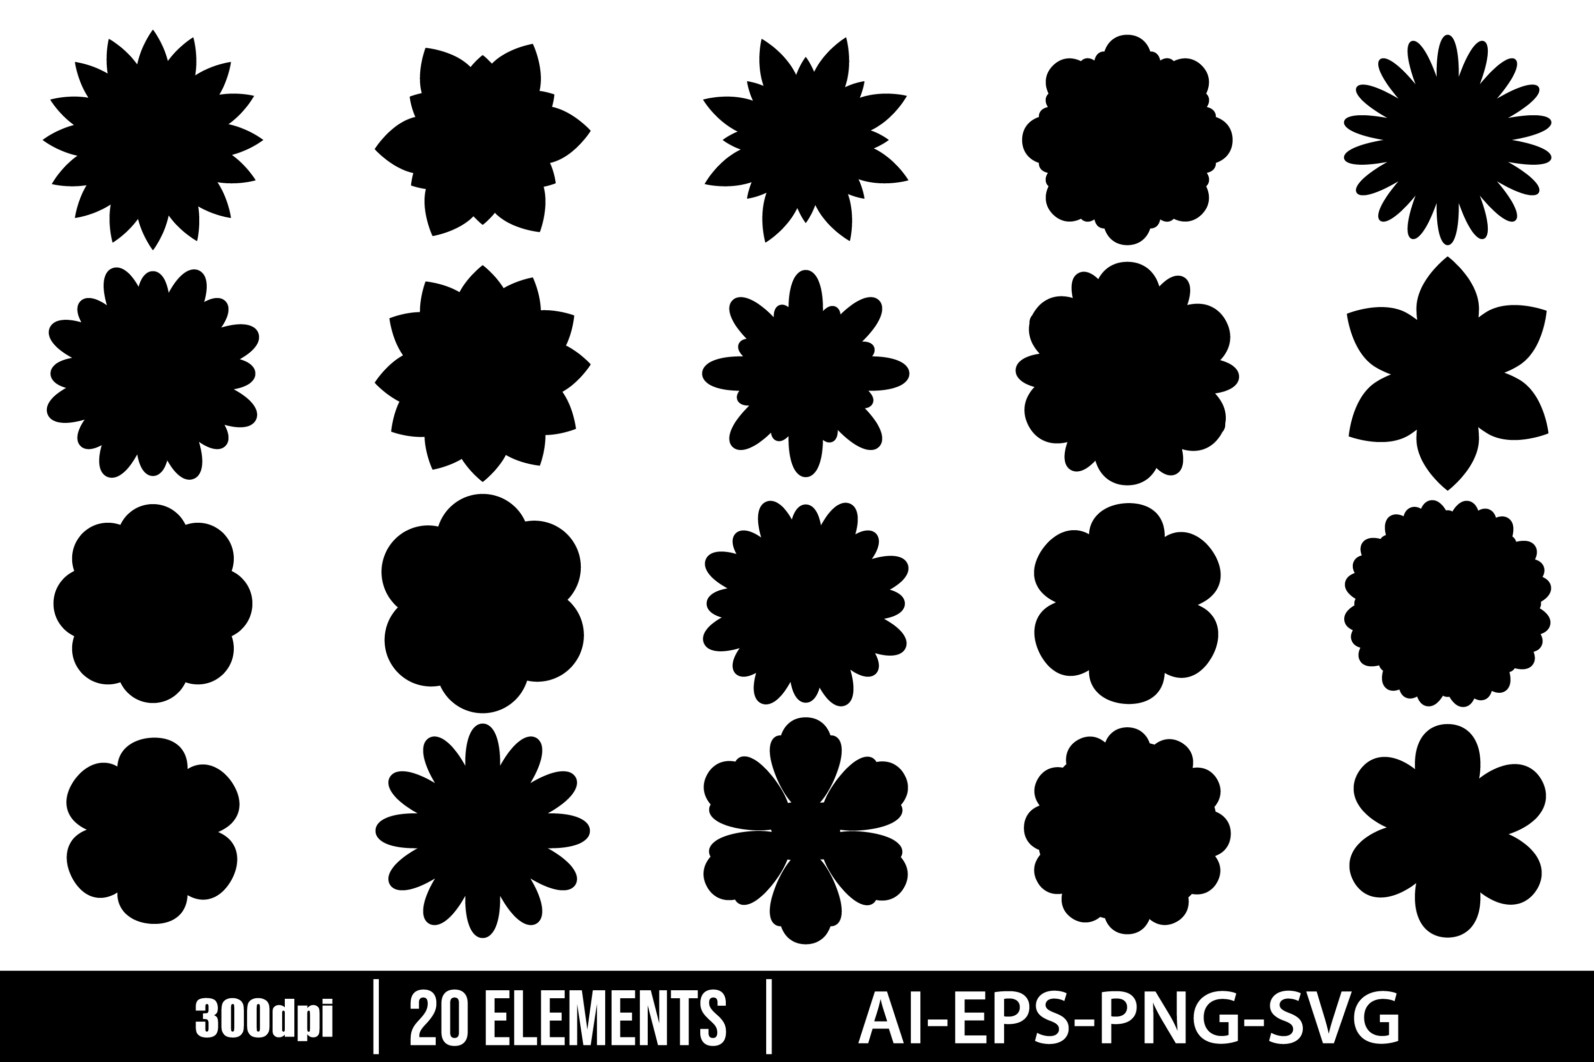 Beautiful flowers silhouette clipart vector design illustration. Vector Clipart Print - FLOWERS SILHOUETTE scaled -